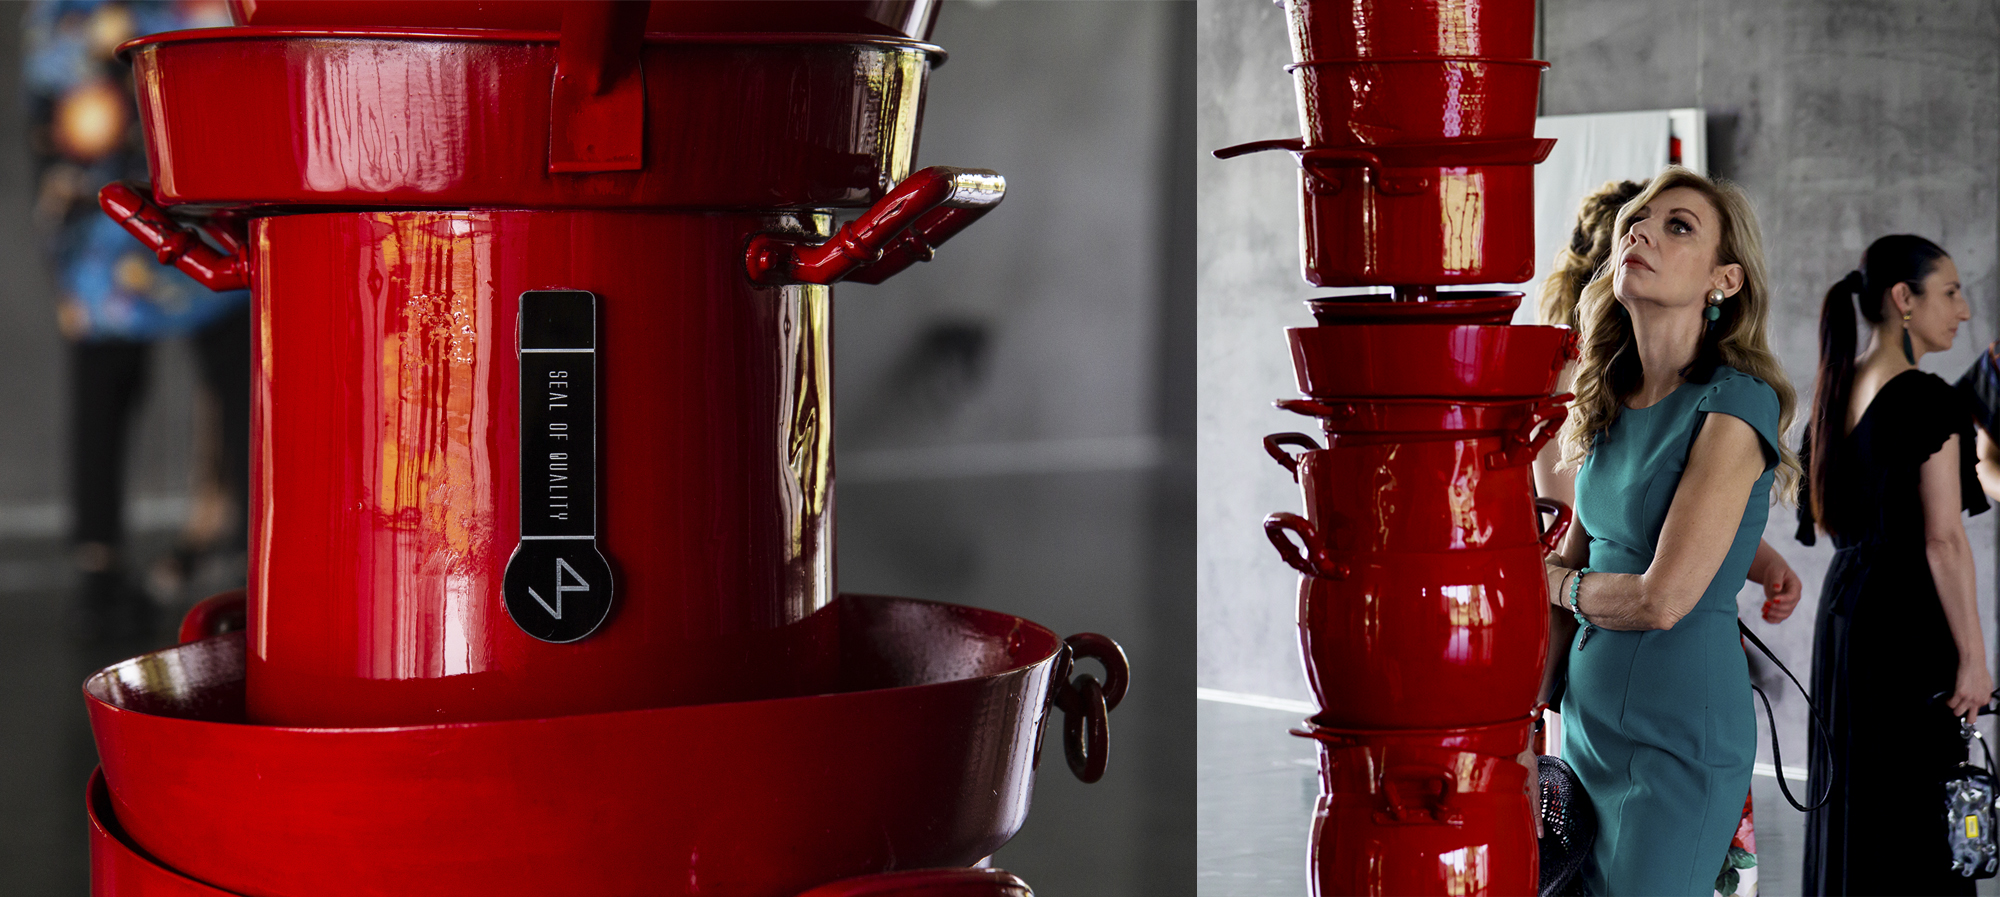 COLONNA-Ø VARIABLE DIAMETER – HEIGHT 3.65 M – POTS, PANS, RED ENAMEL-©2019 – edition of 1-(courtesy by Antonello Colonna collection)